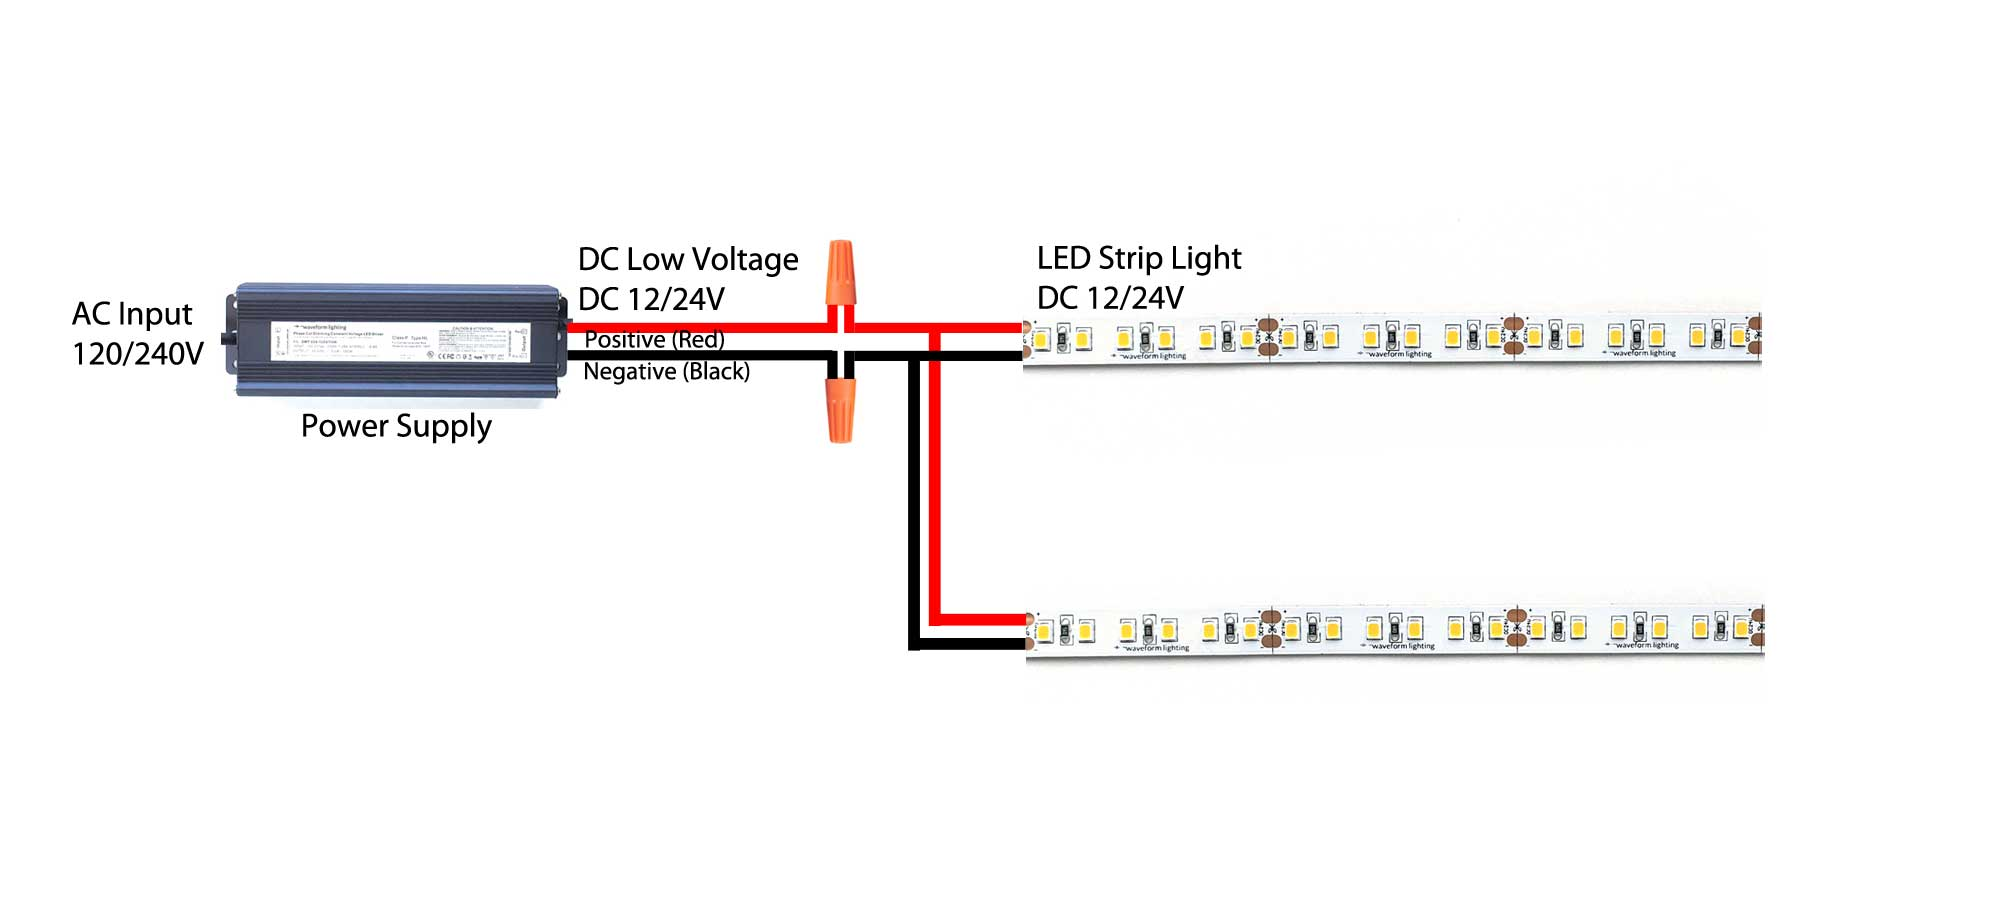 Connecting Led Strips In Series Vs Parallel Waveform Lighting